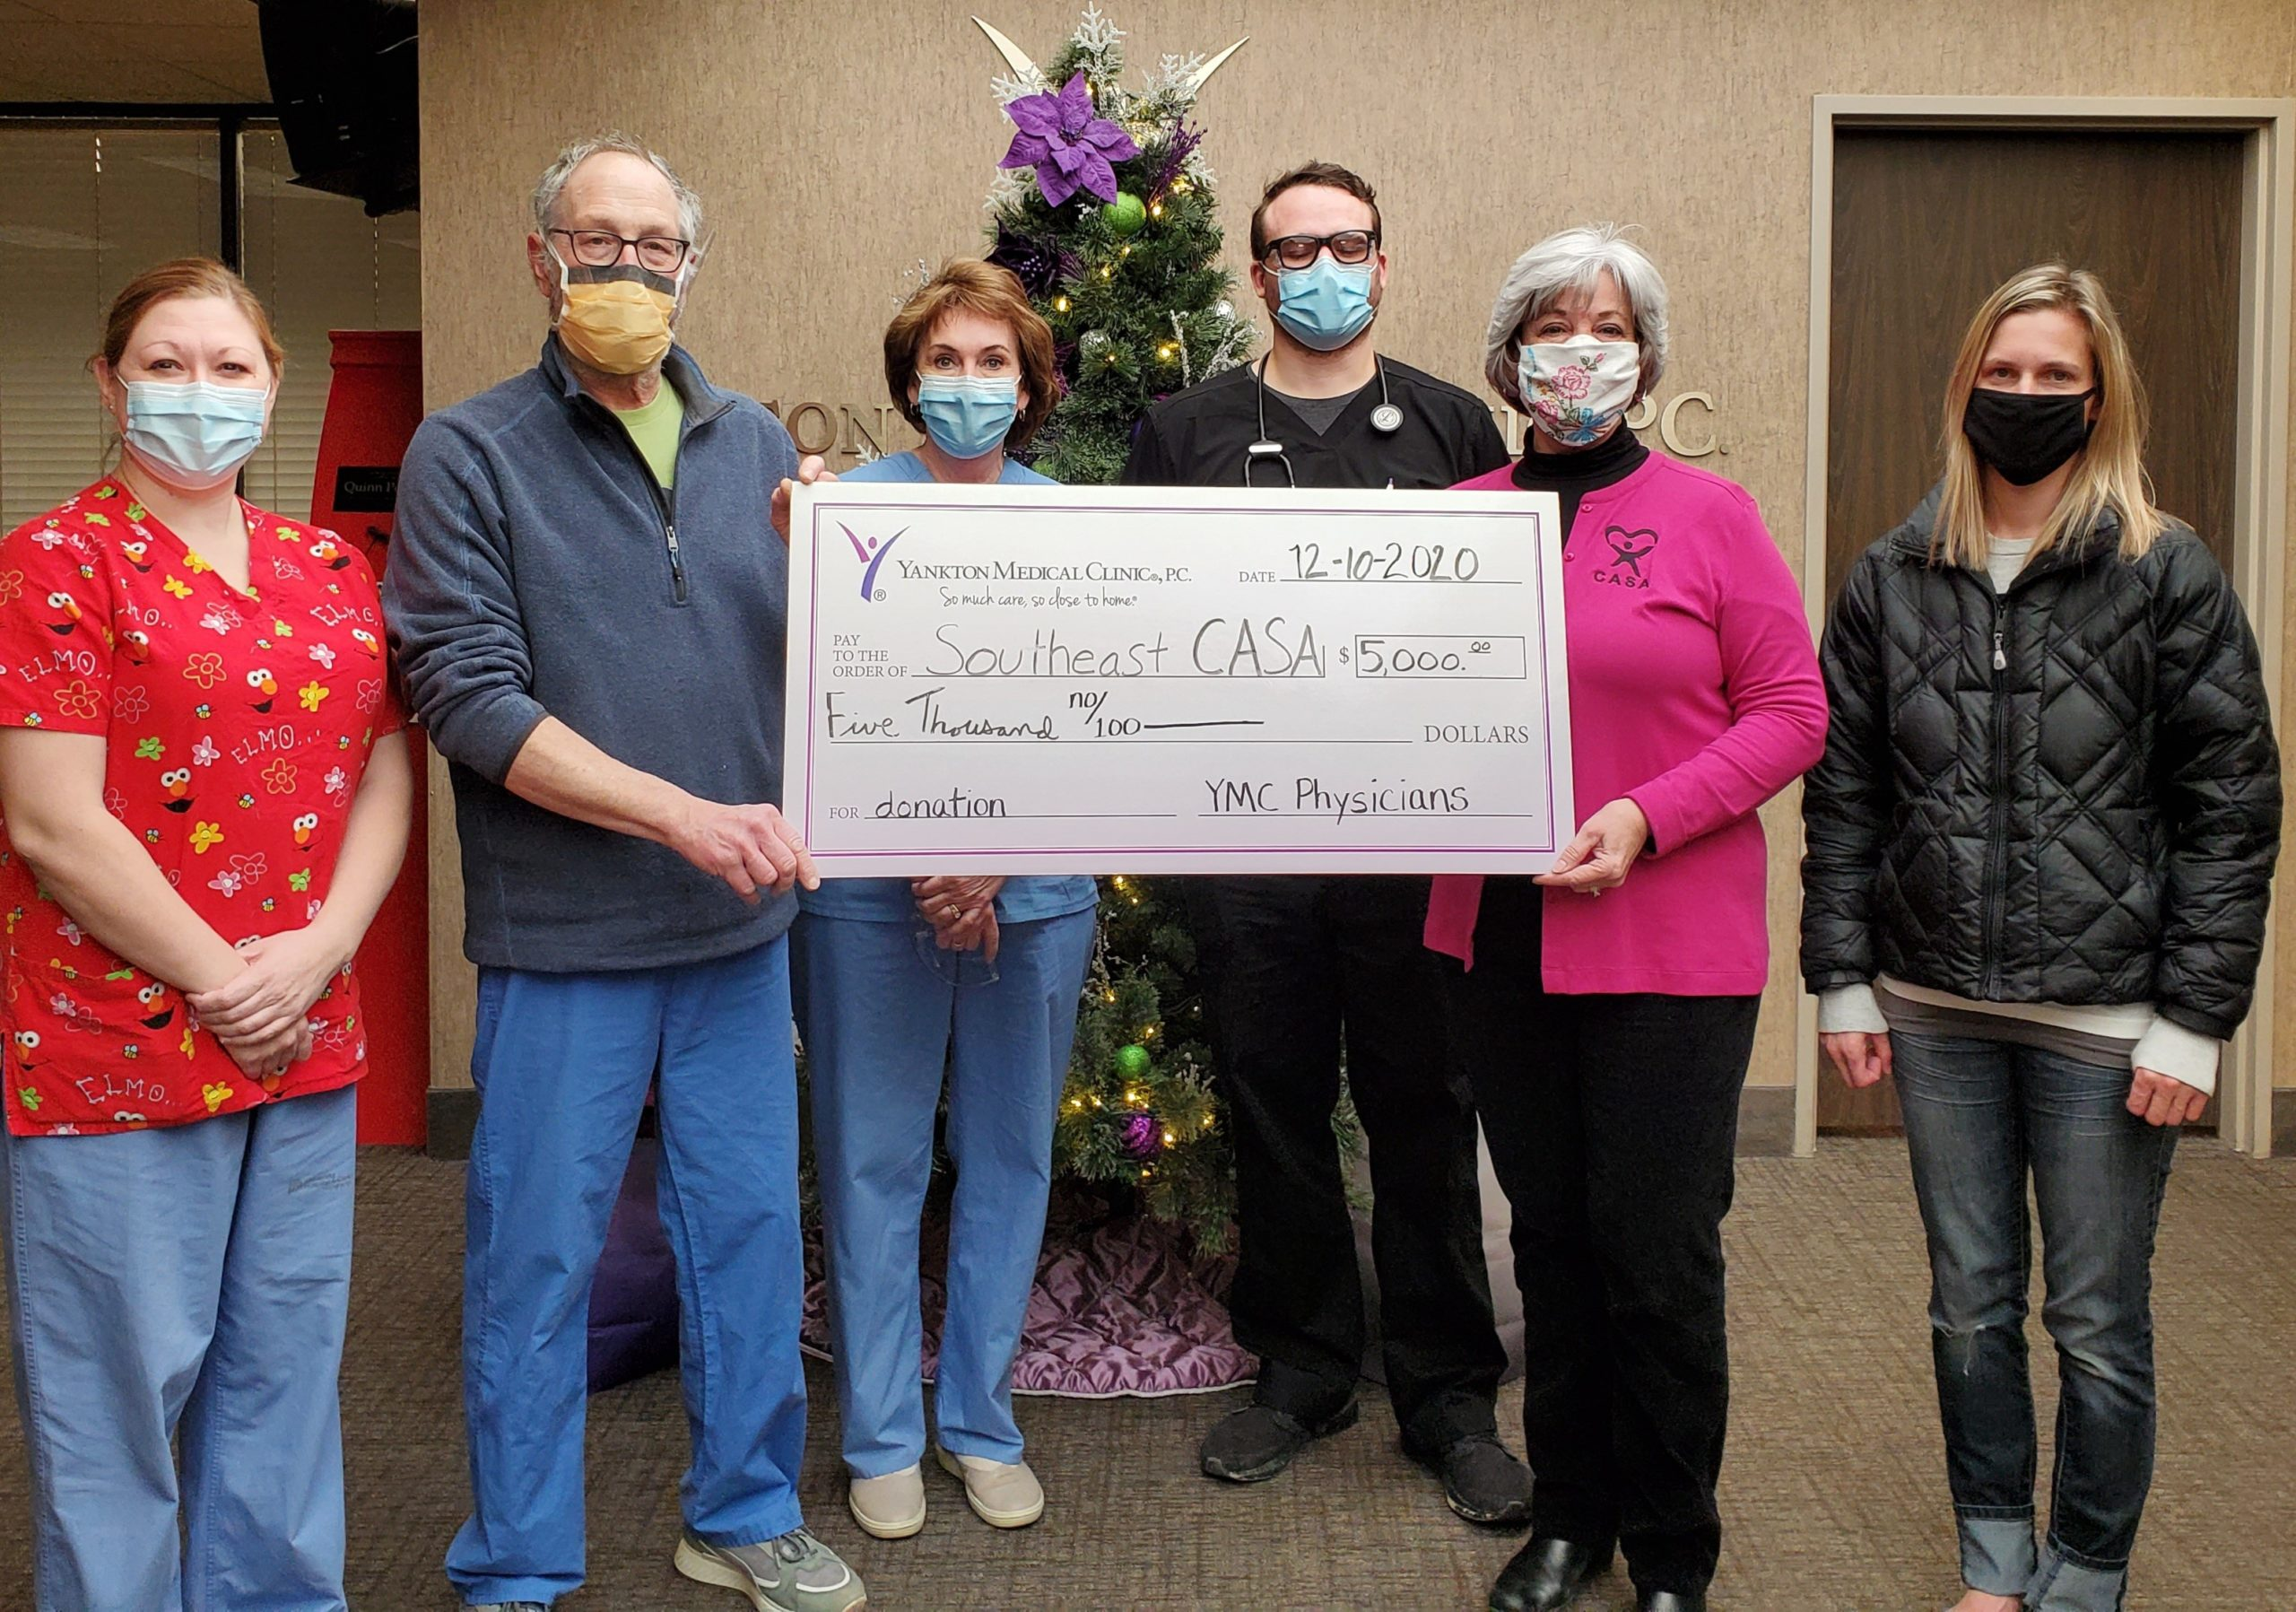 Yankton Medical Clinic Supports Southeast CASA